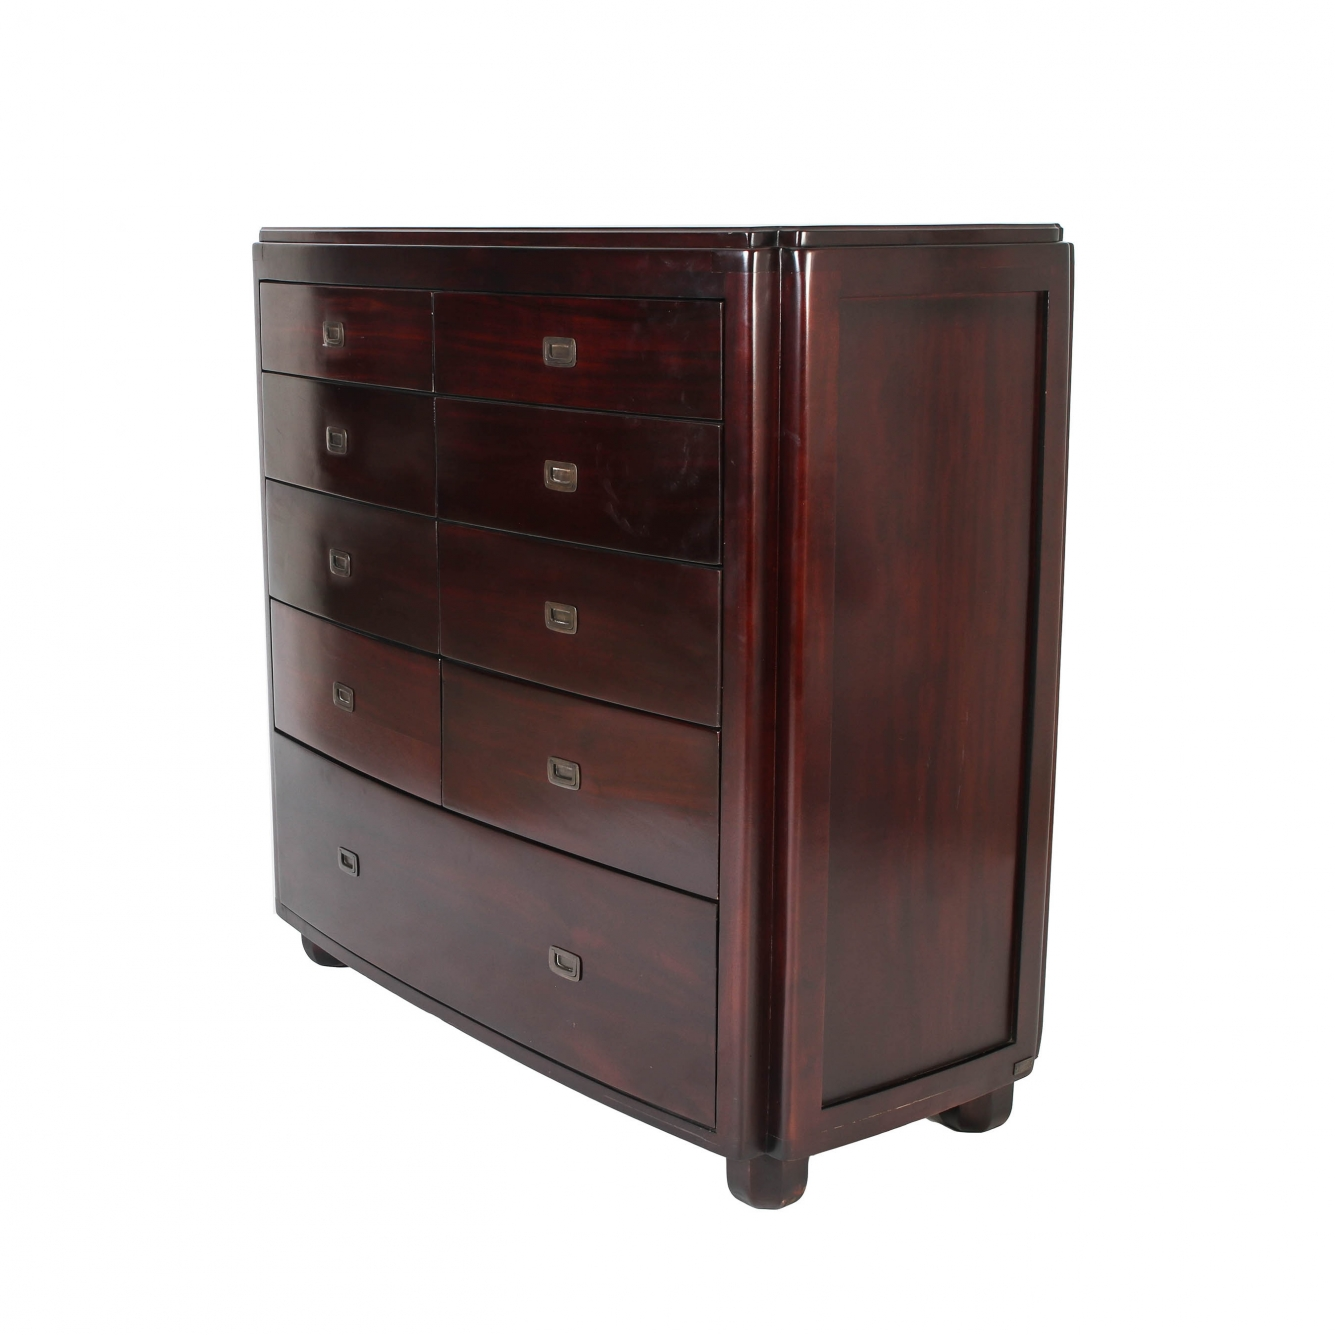 HH Products 0023 HOUSE HAVEN FURNITURE 68